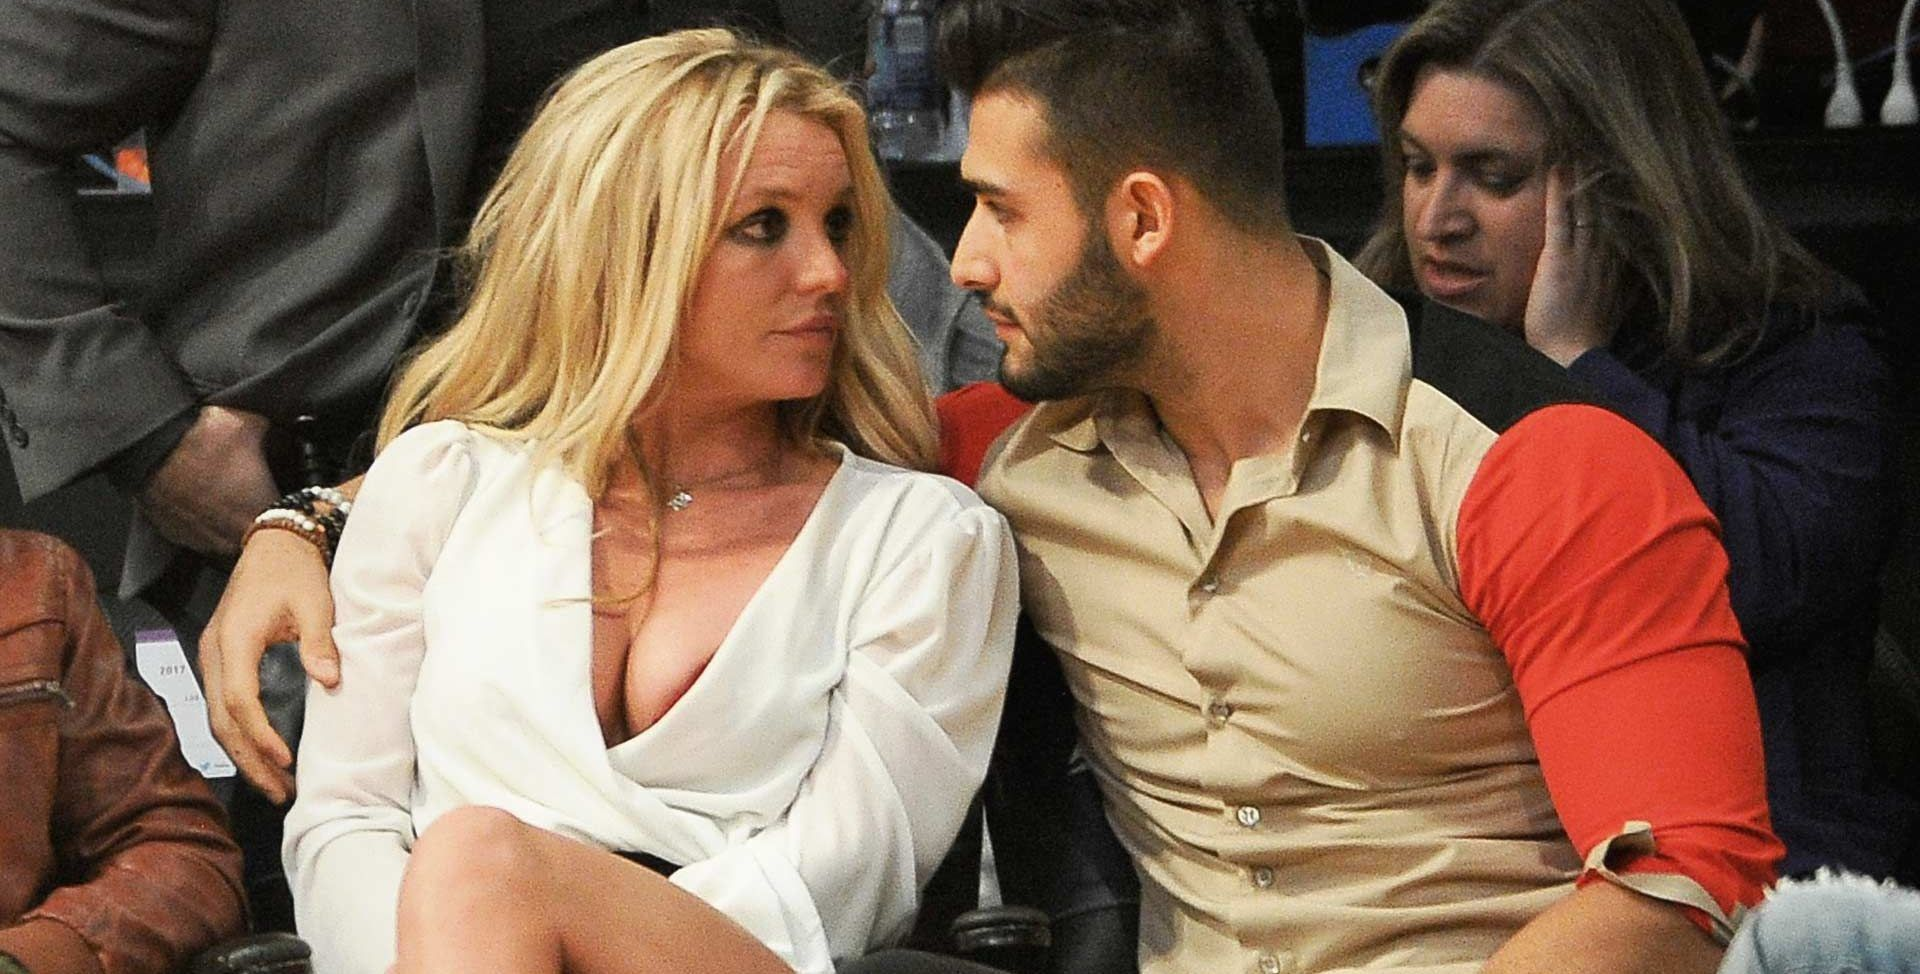 Fans Think Sam Asghari Just Foreshadowed What's Going To Happen To Britney Spears